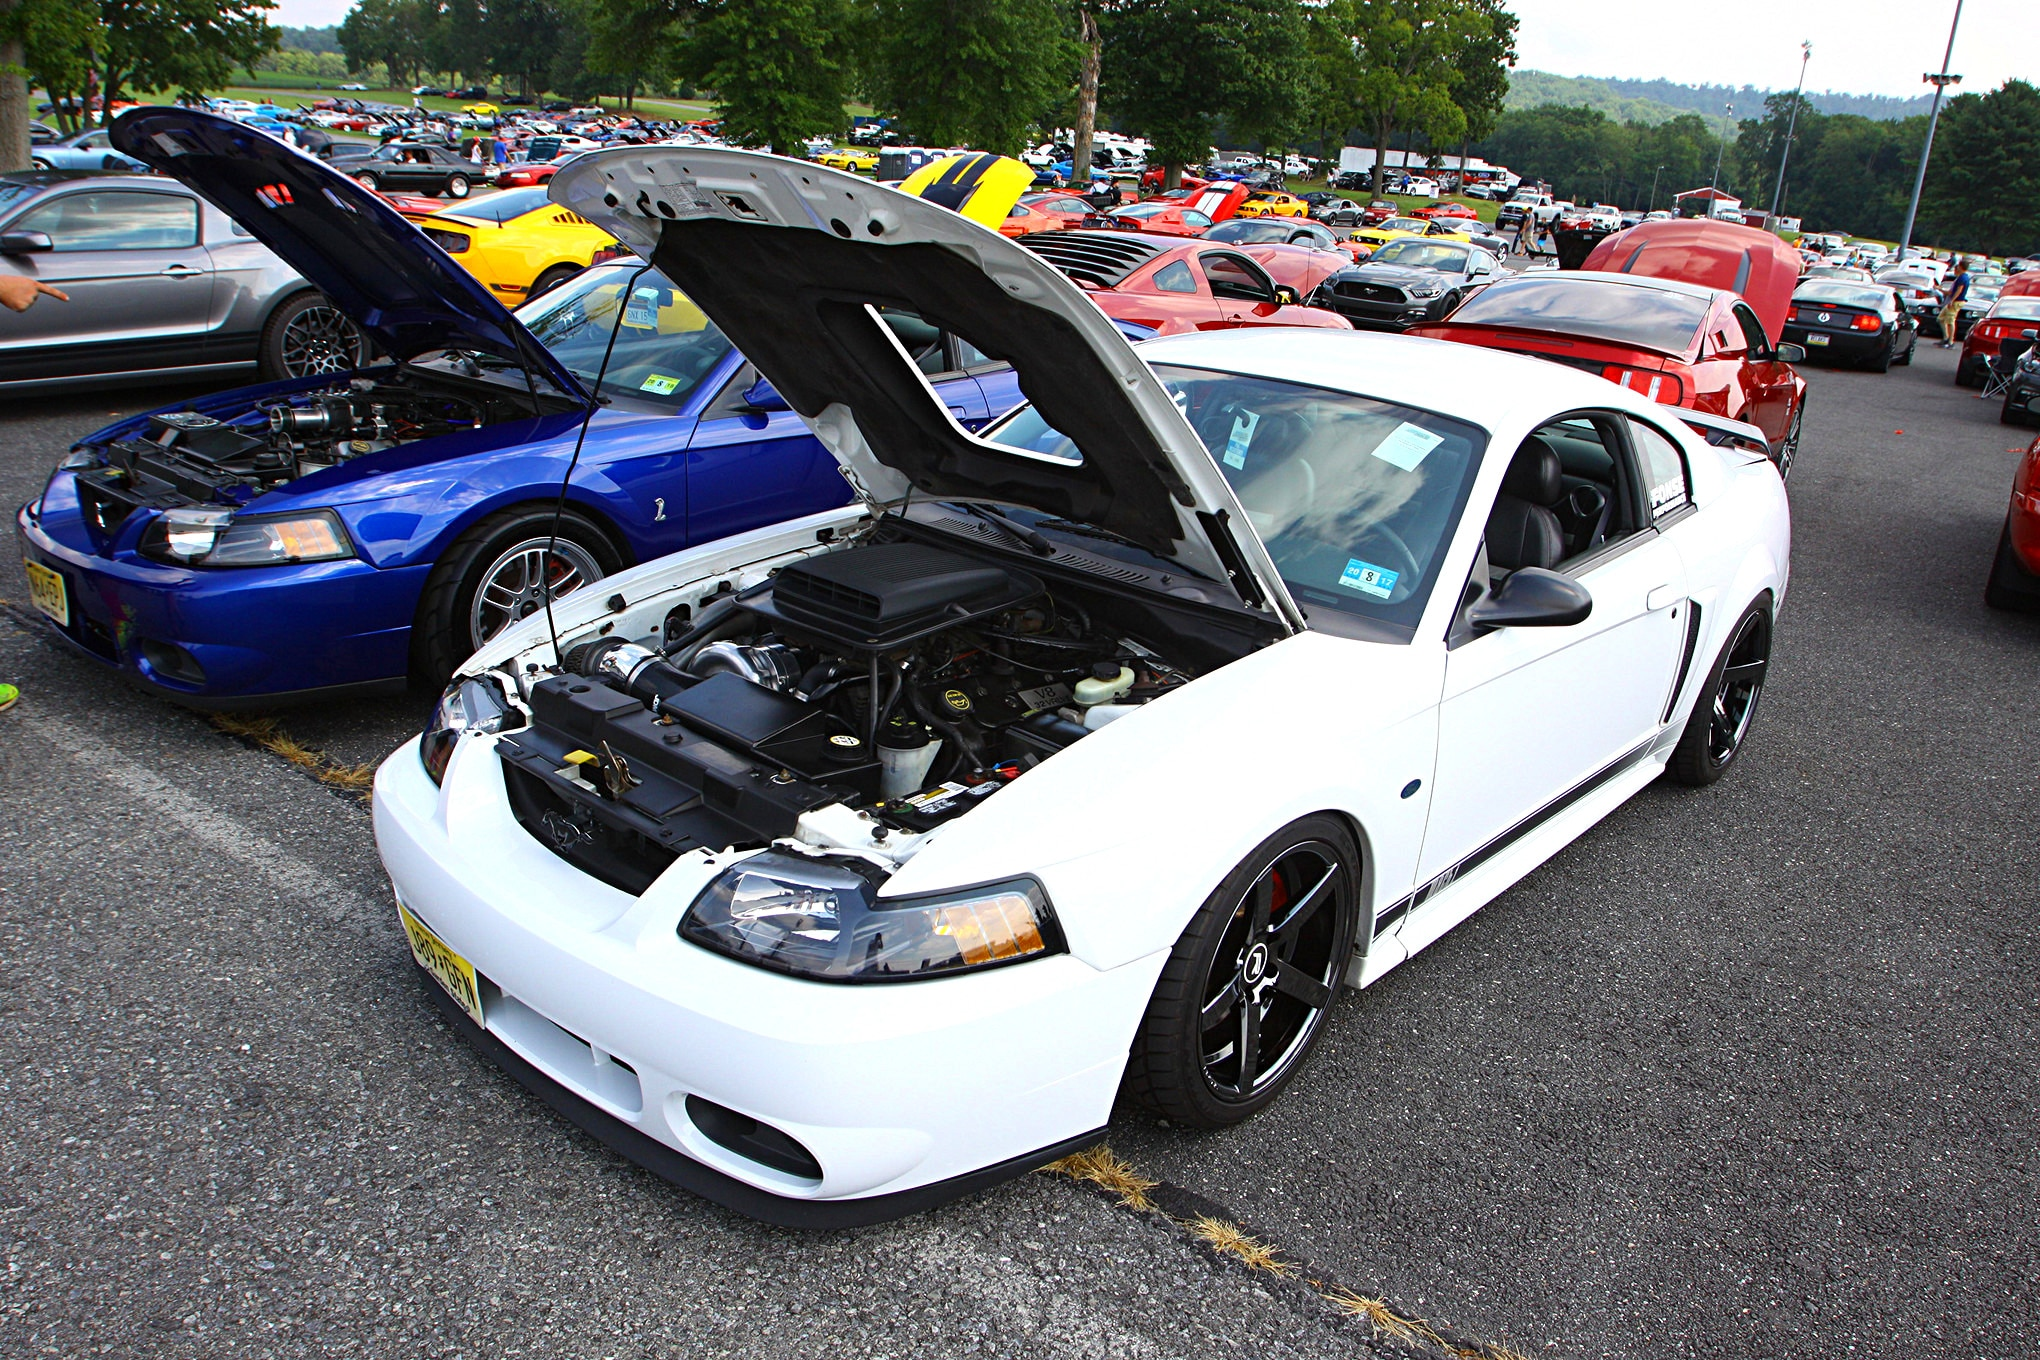 2017 AmericanMuscle Show Full Coverage 013